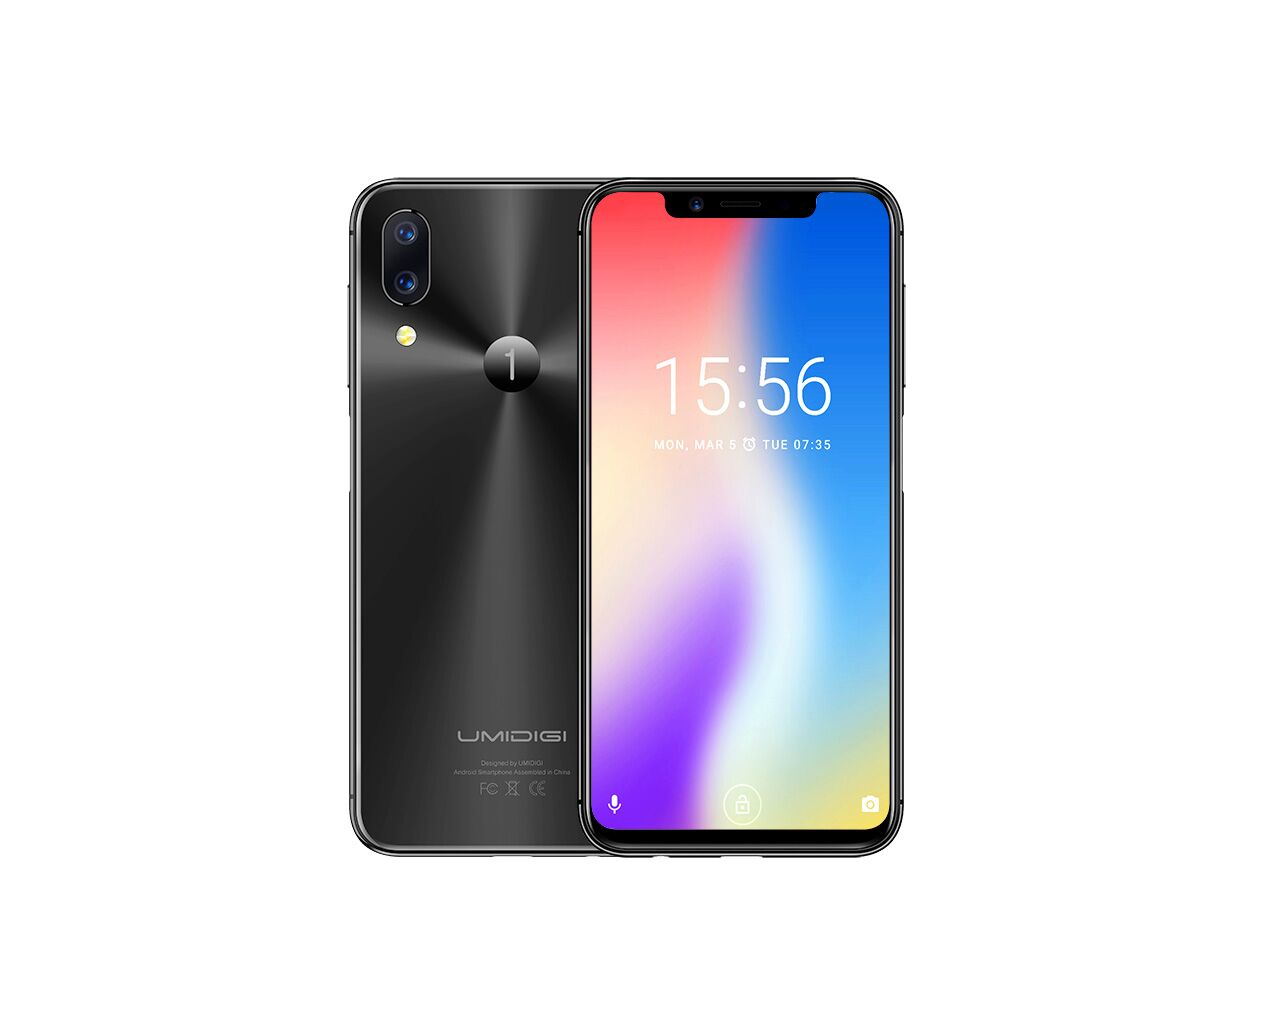 UMIDIGI One 02 - Umidigi One Price, Specs, Features, and Review.